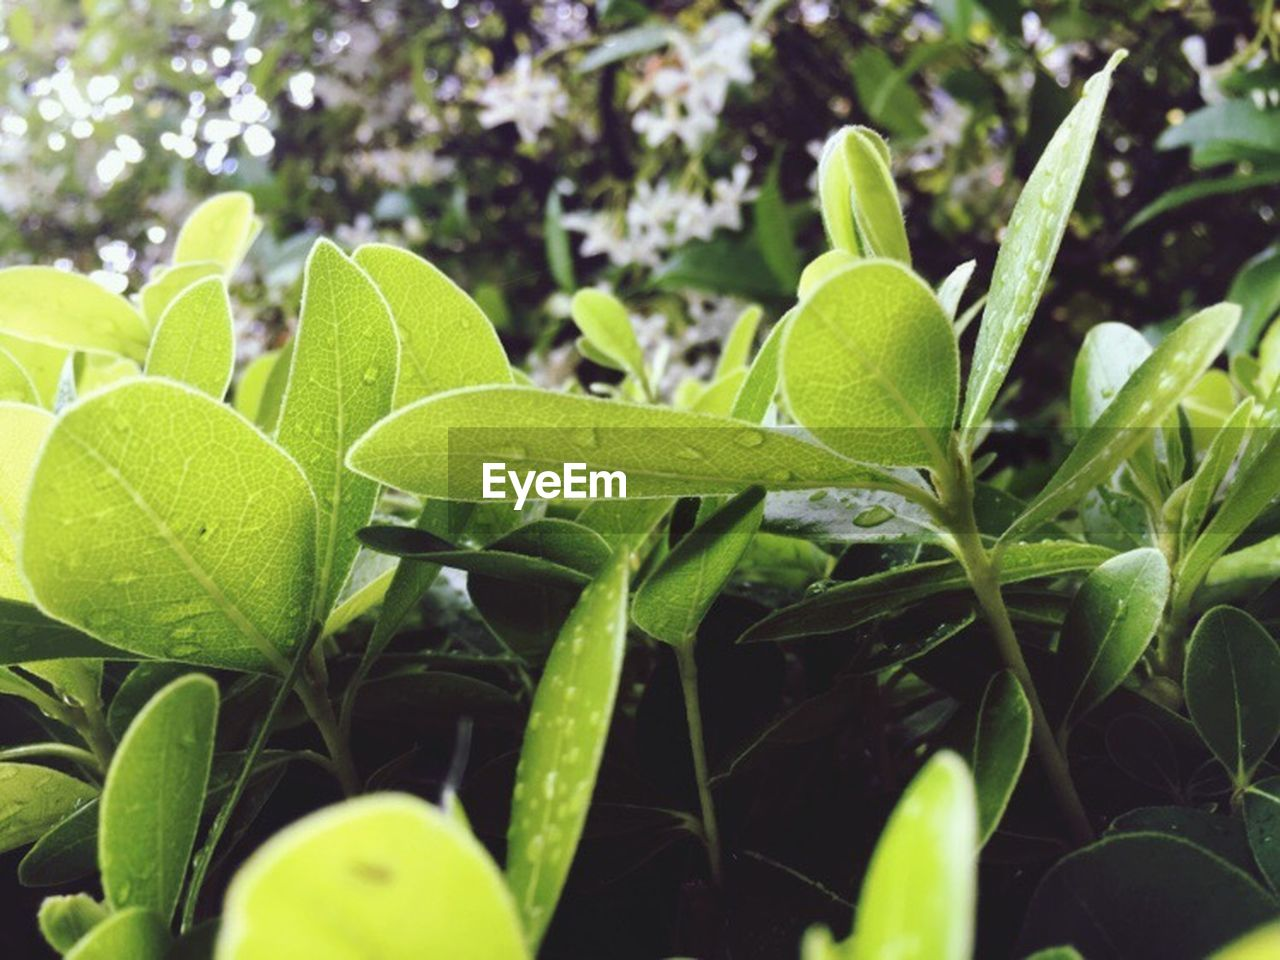 leaf, plant, green color, growth, nature, close-up, no people, day, outdoors, freshness, beauty in nature, fragility